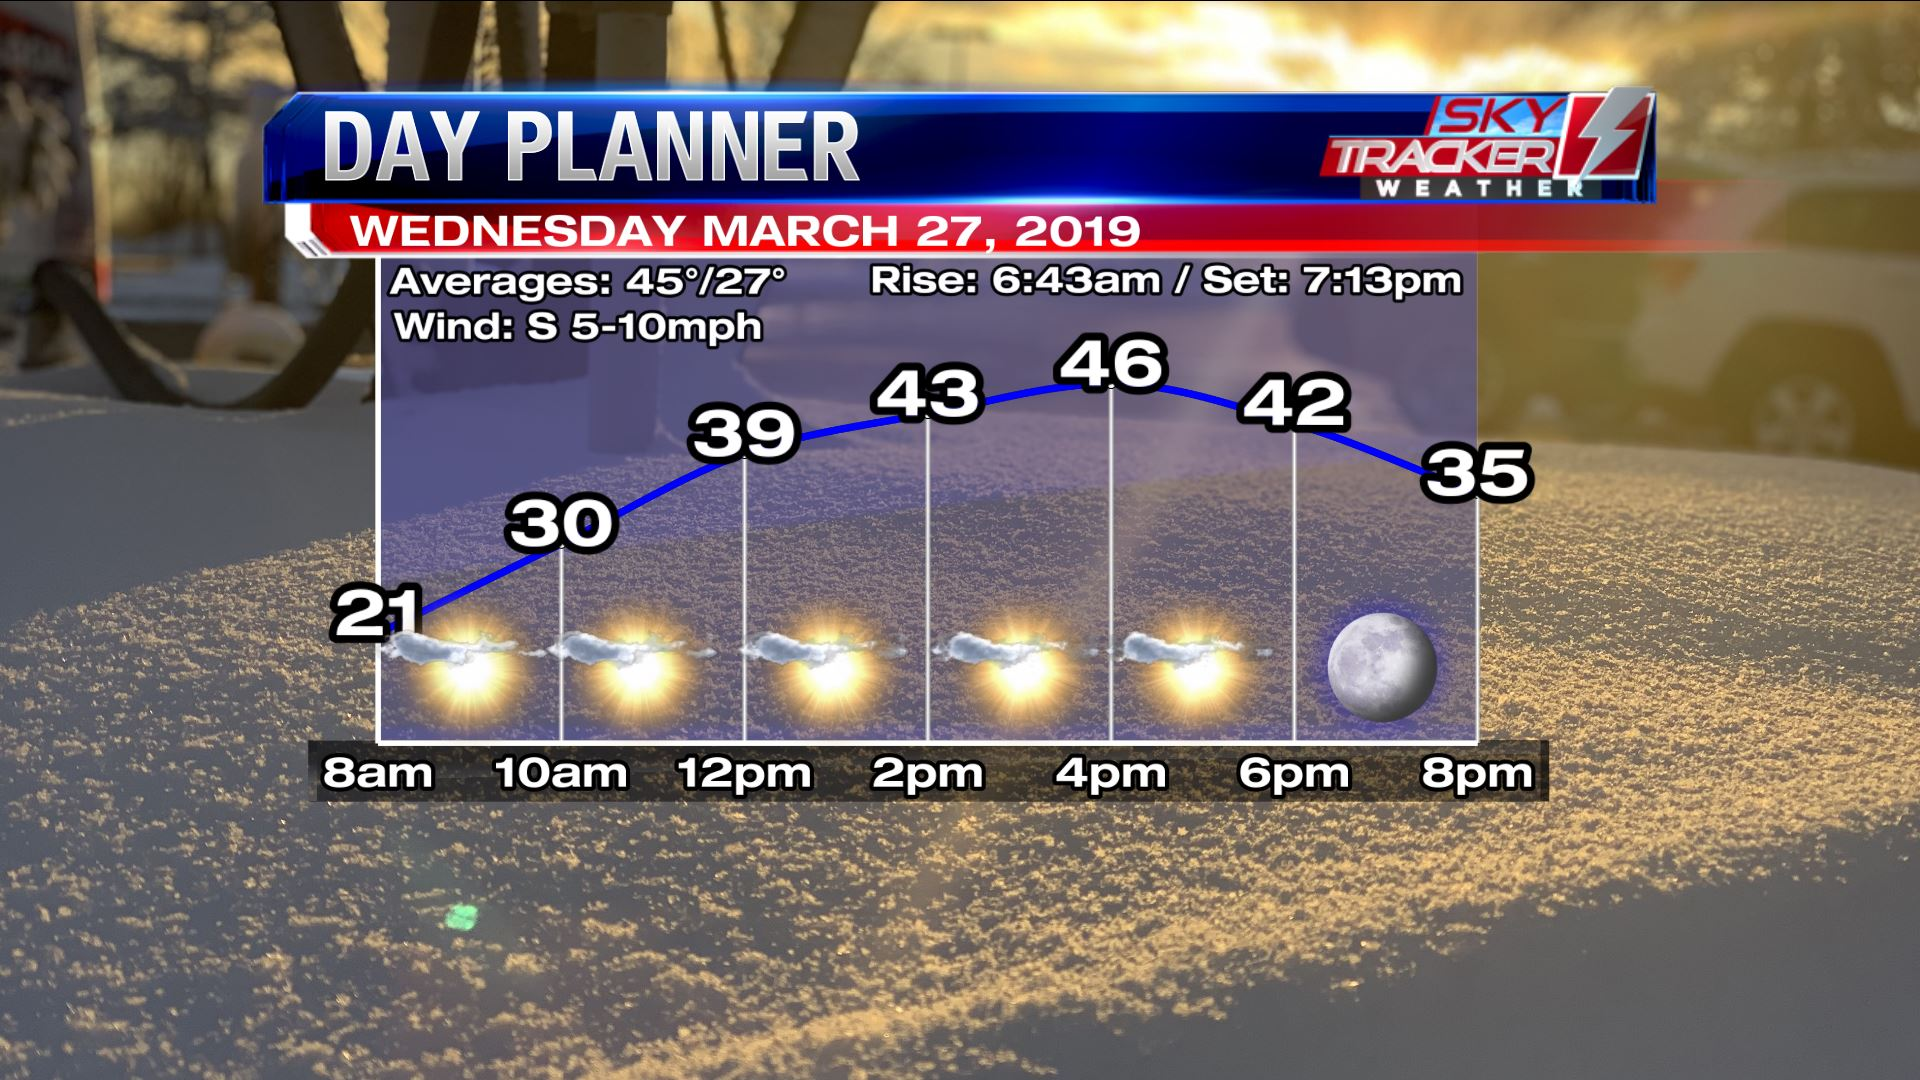 Planner for Wednesday March 27 2019